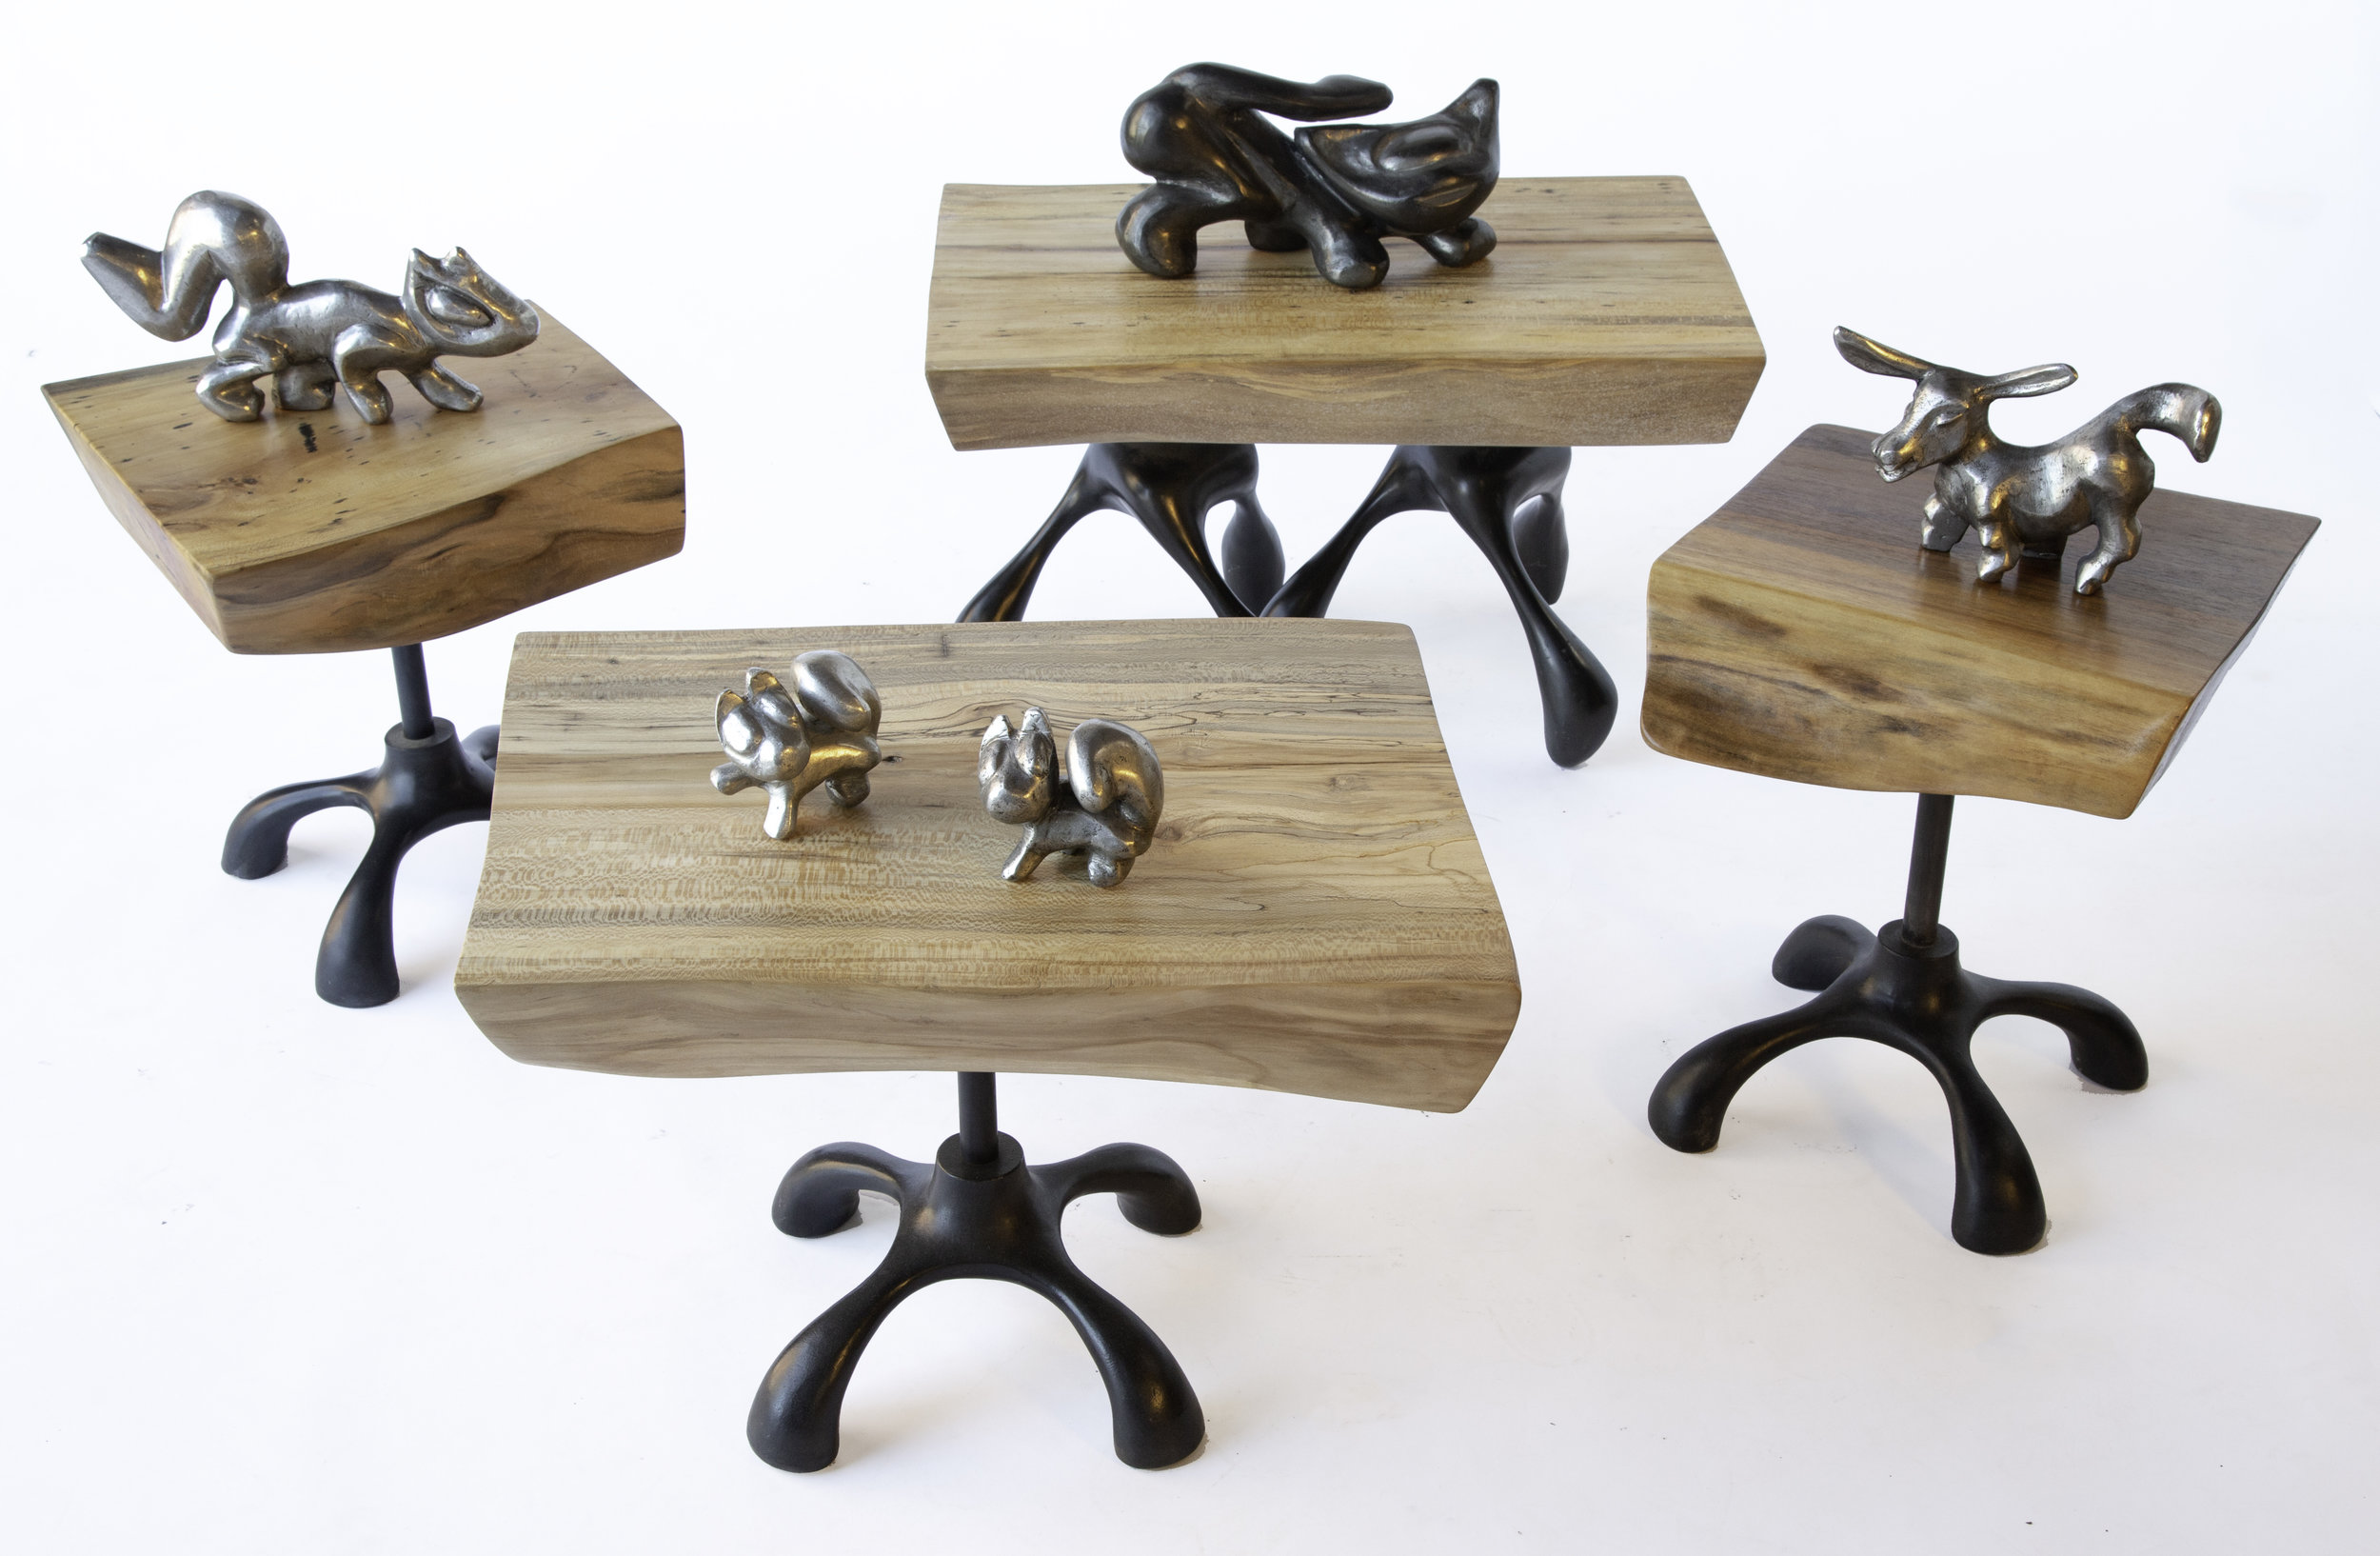 Chunk Table Collection with Animals 2.jpg